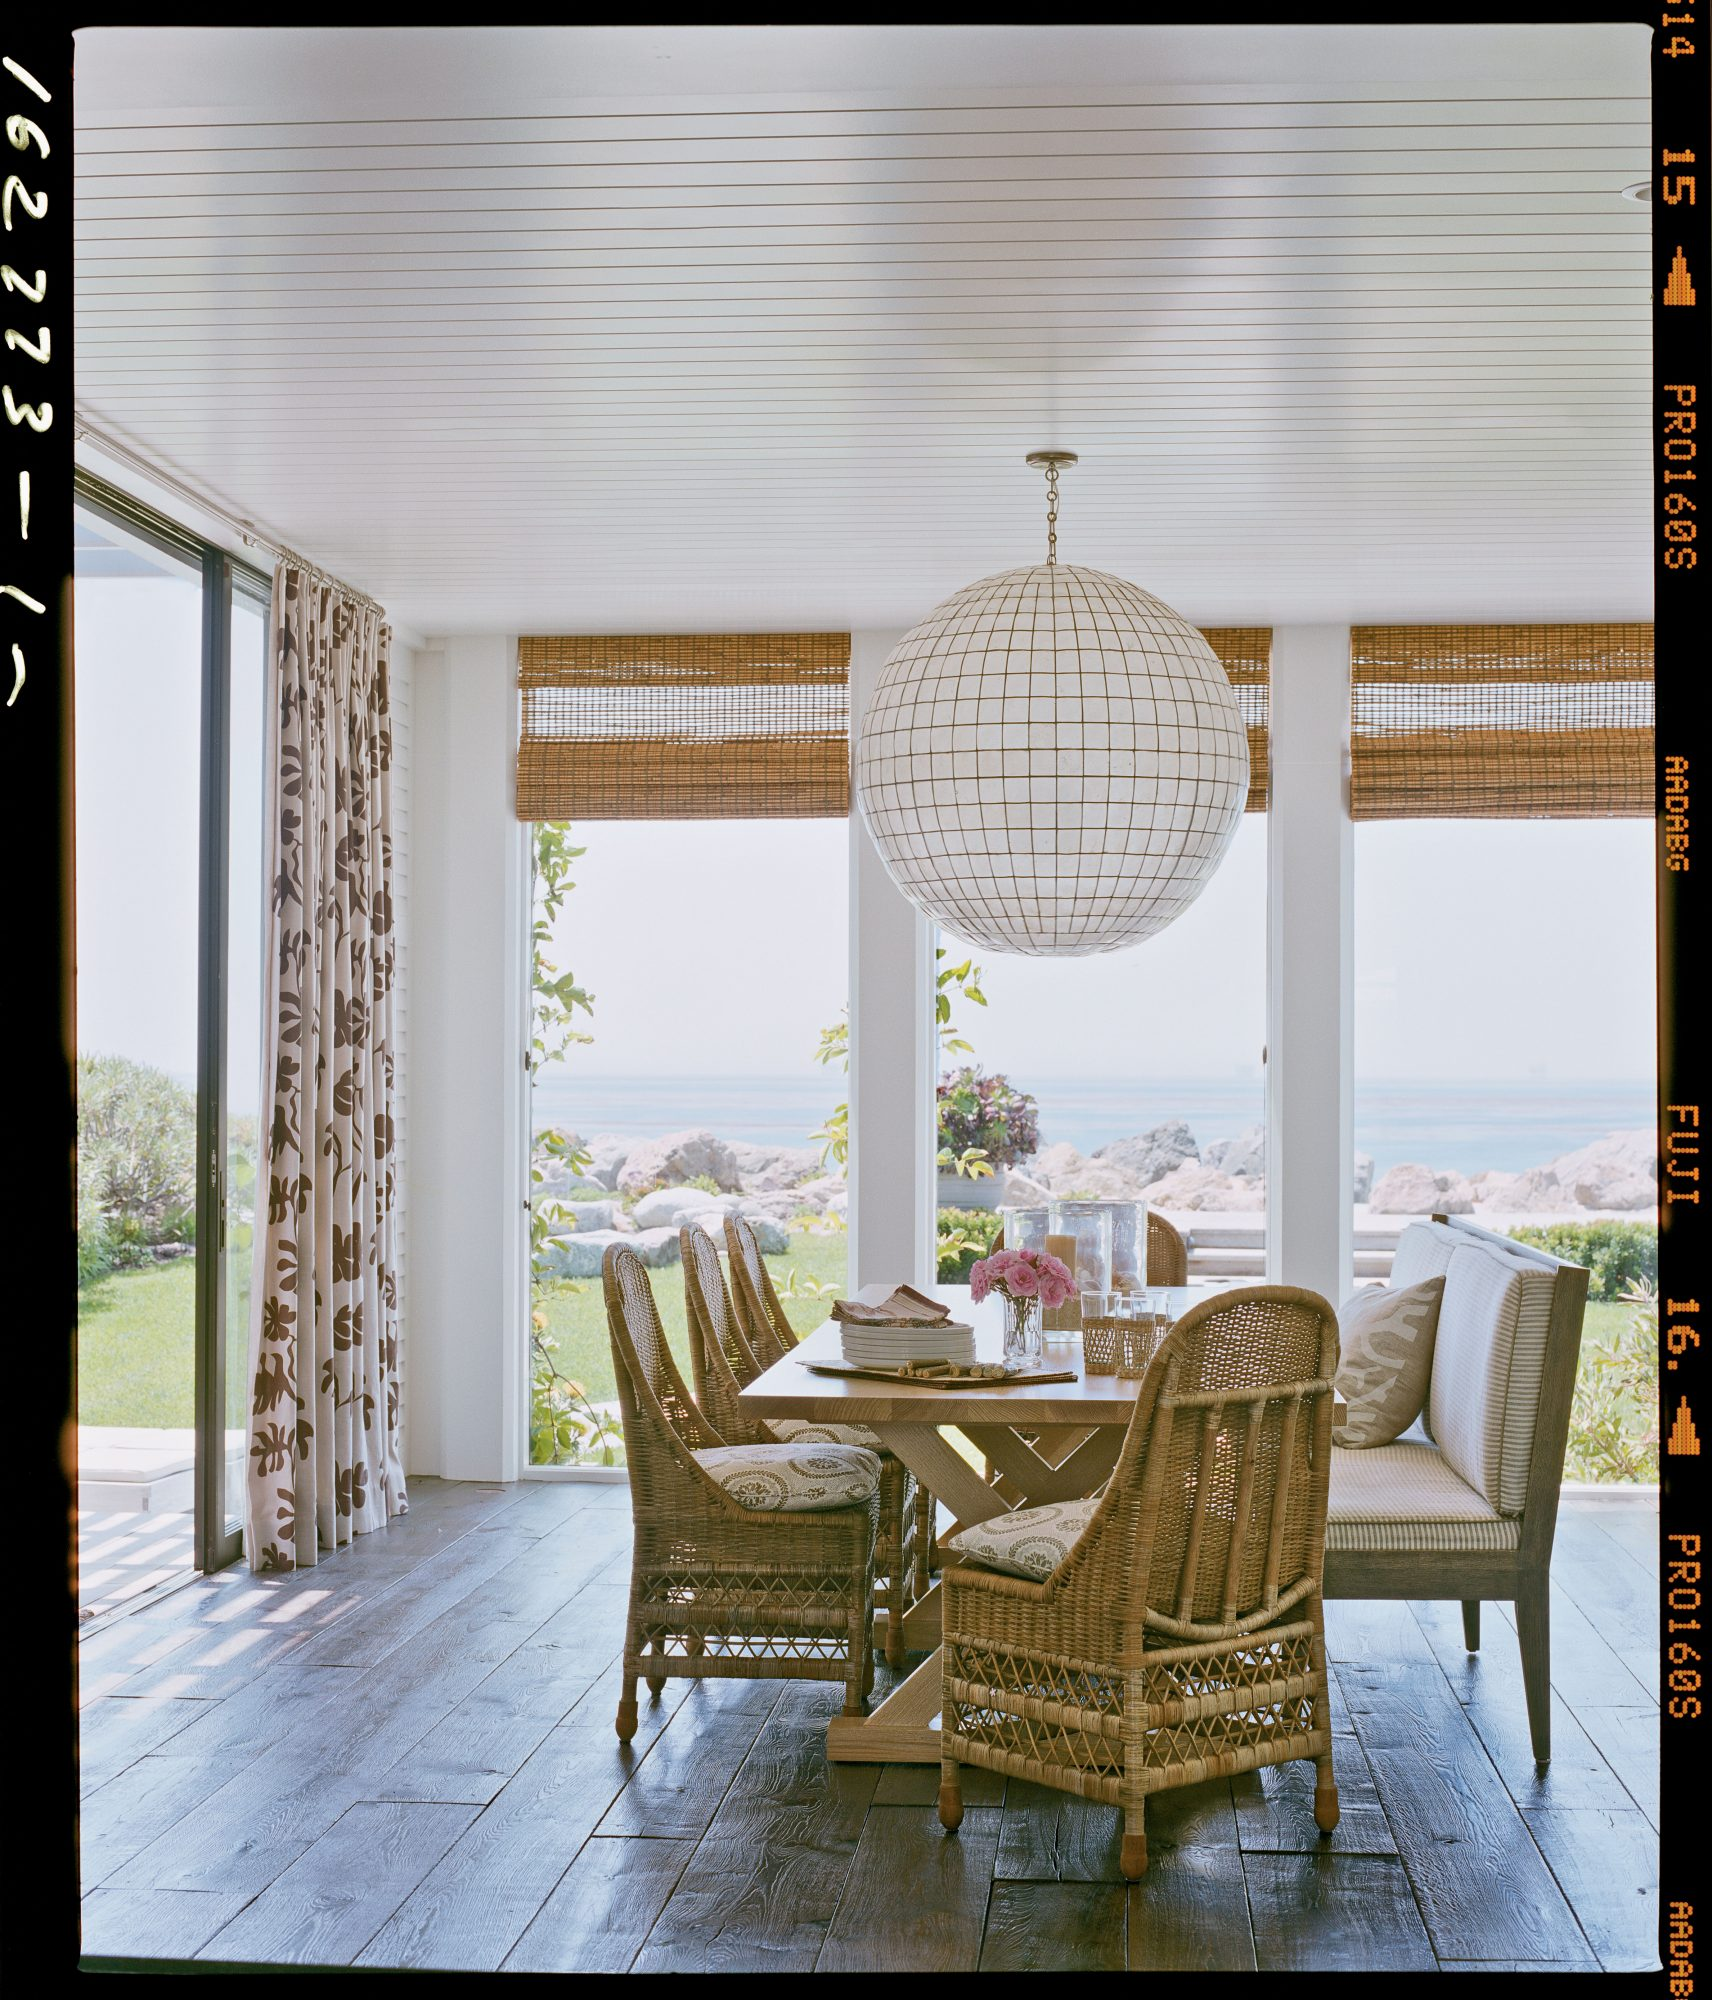 Make a statement with your lighting like these homeowners did with this 36-inch capiz shell orb over their low-key dining room table. Not only does it cast a warm glow over diners, but also it can be spotted from the shore and gives this beach bungalow a one-of-a-kind look.